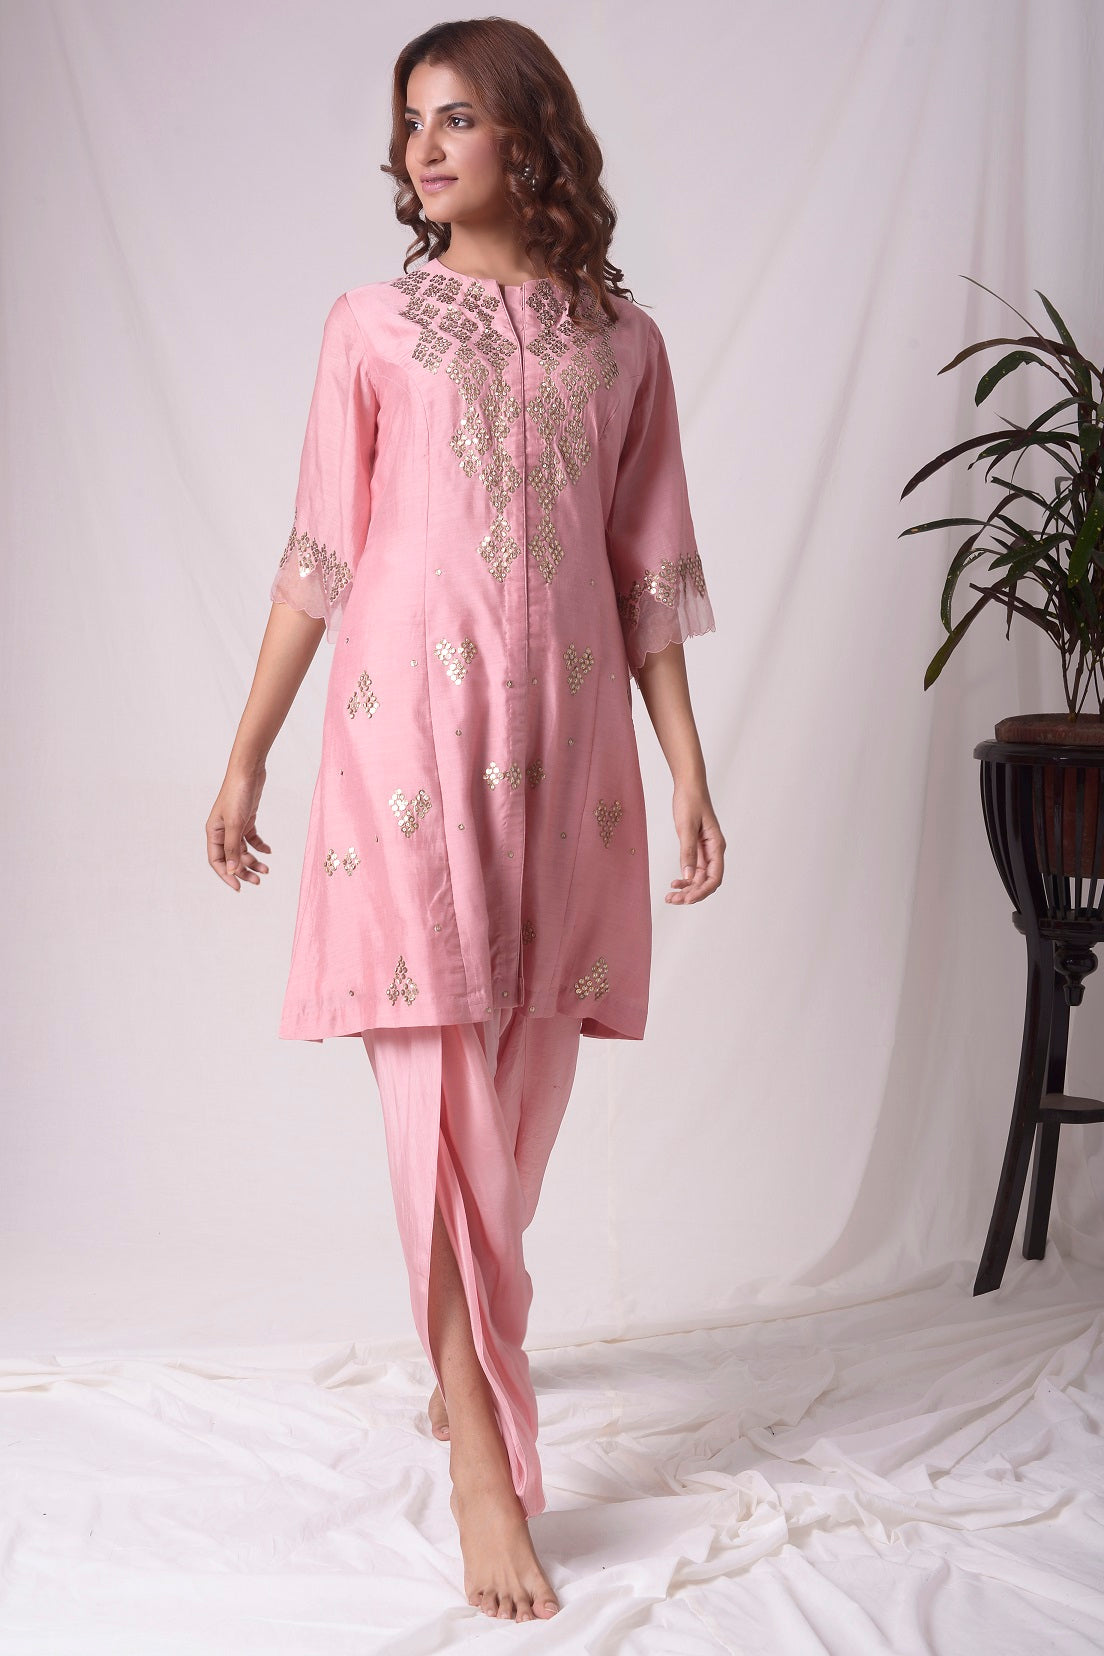 Dusty Pink Chanderi Suit With Dhoti Online in USA-full view-4